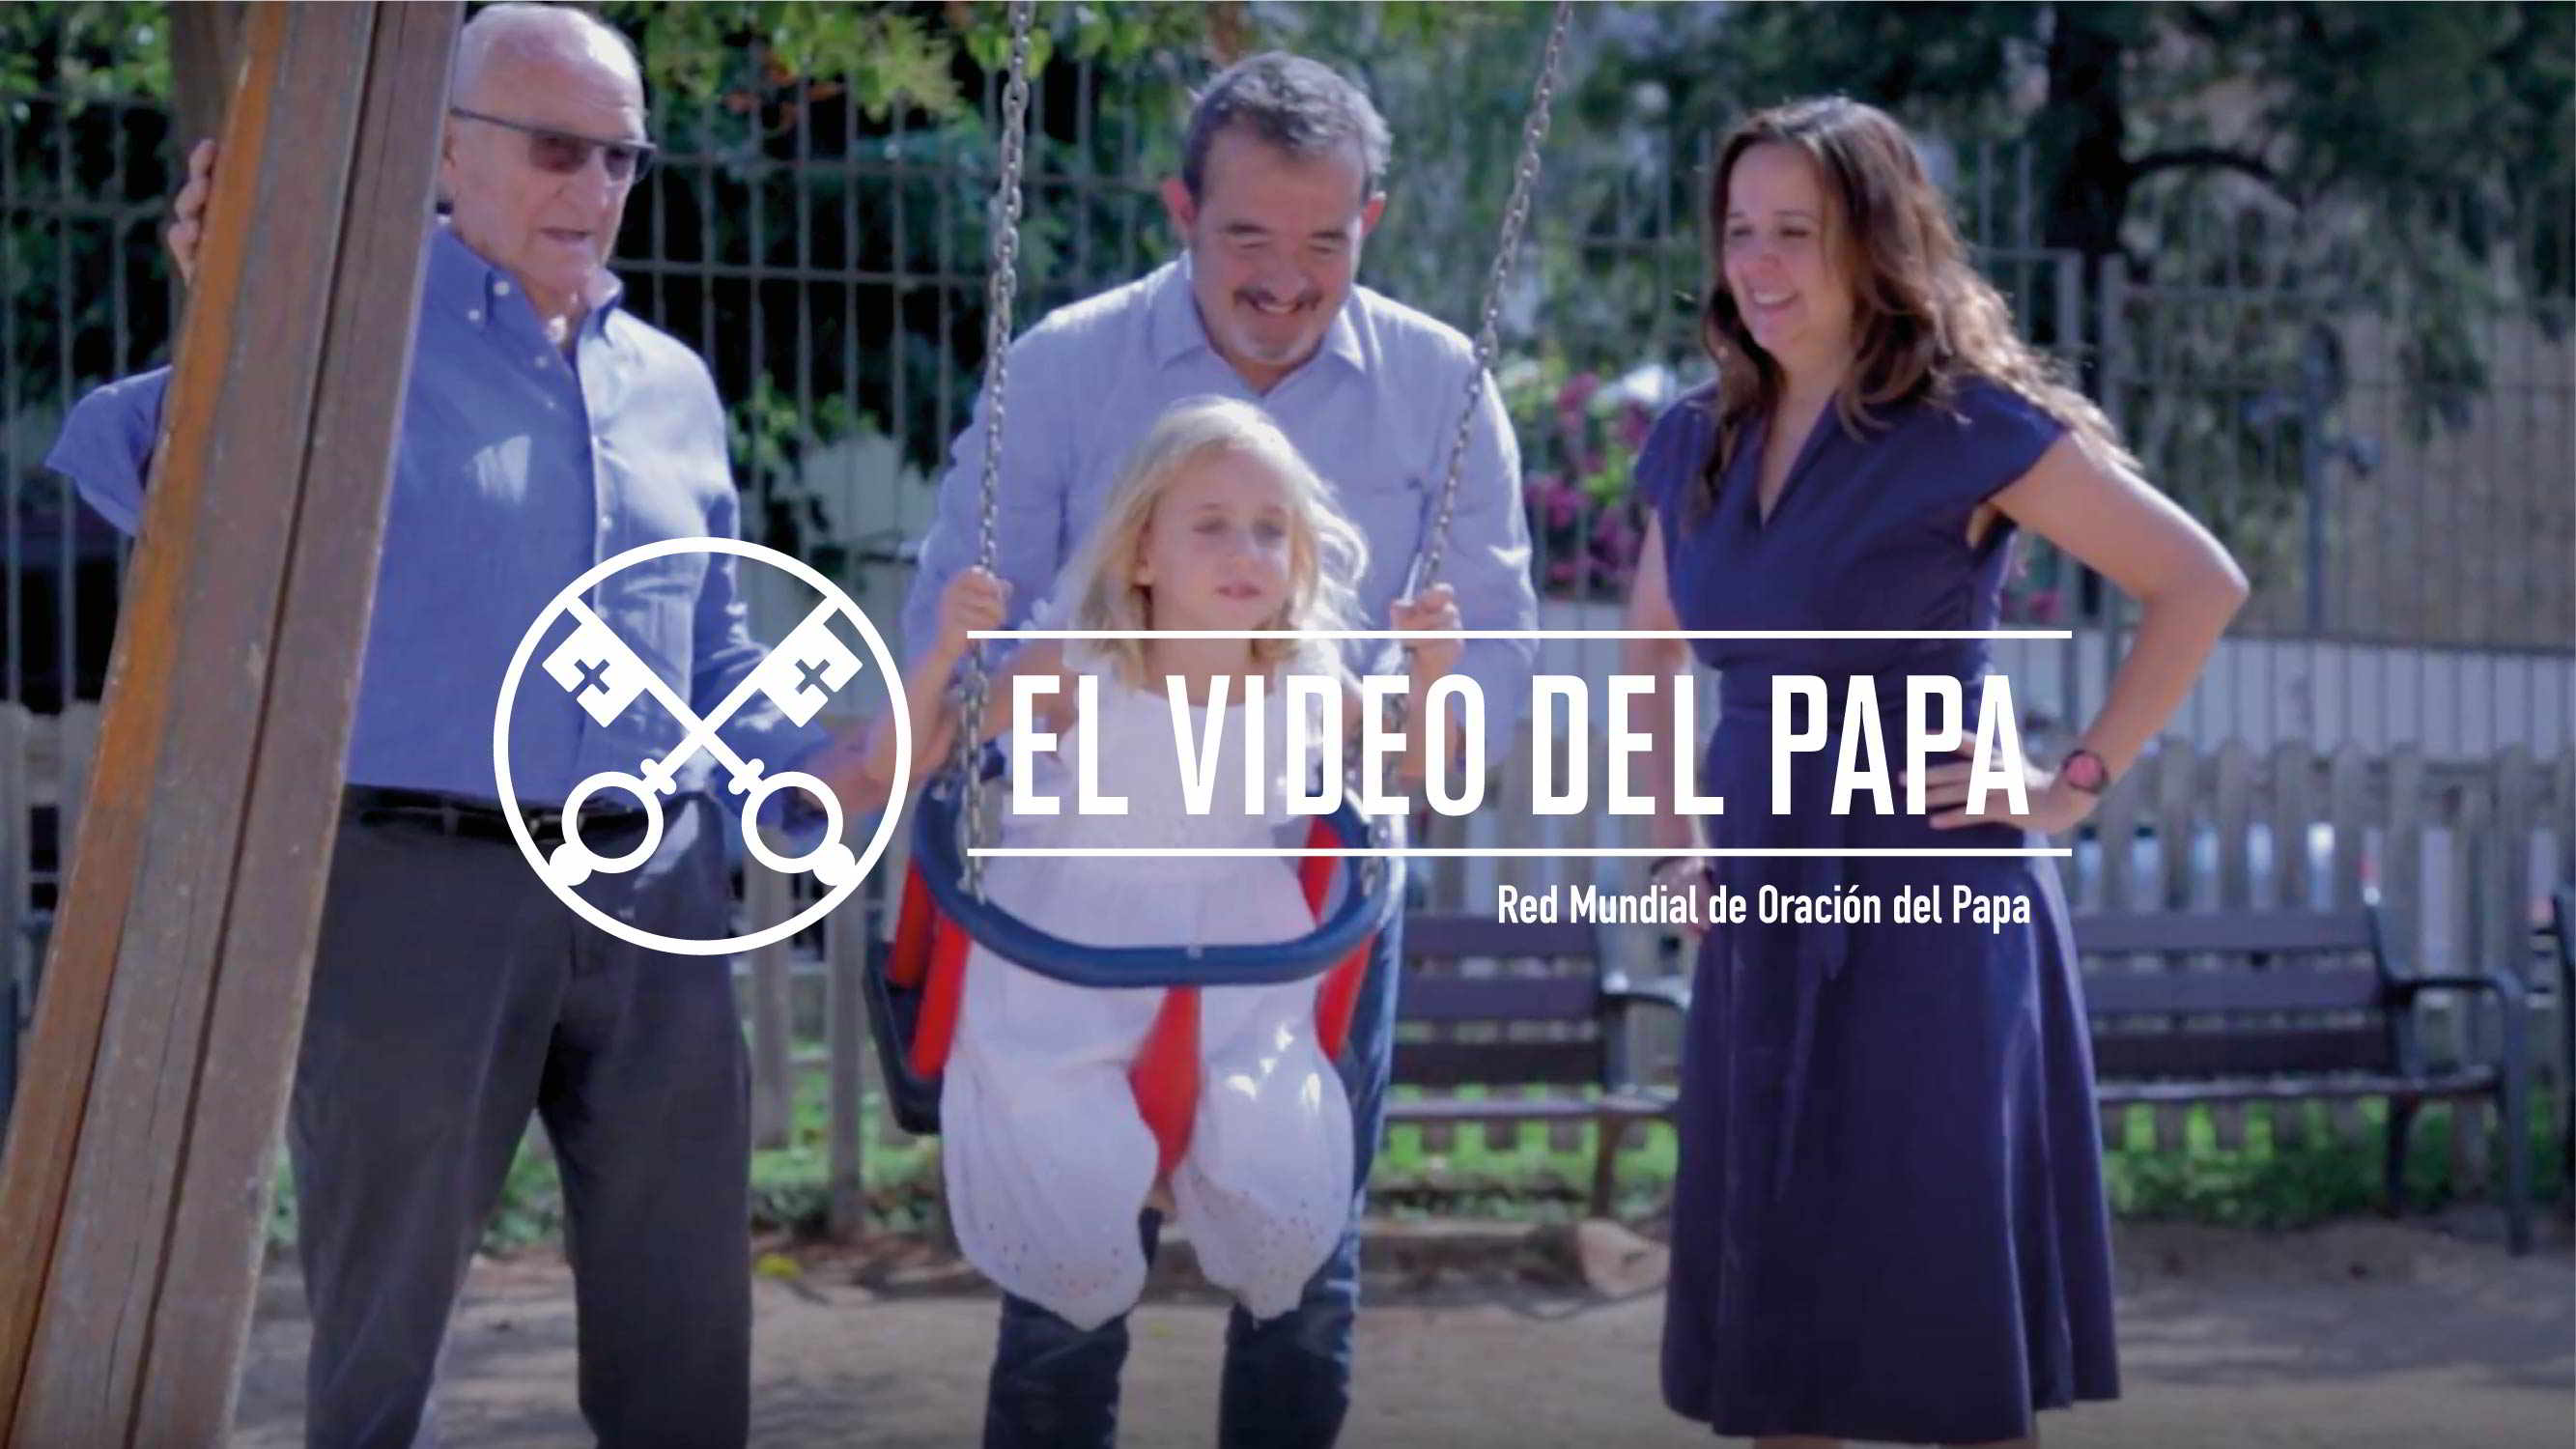 Official Image - The Pope Video 8 2018 - The Treasure of Families - 2 Spanish